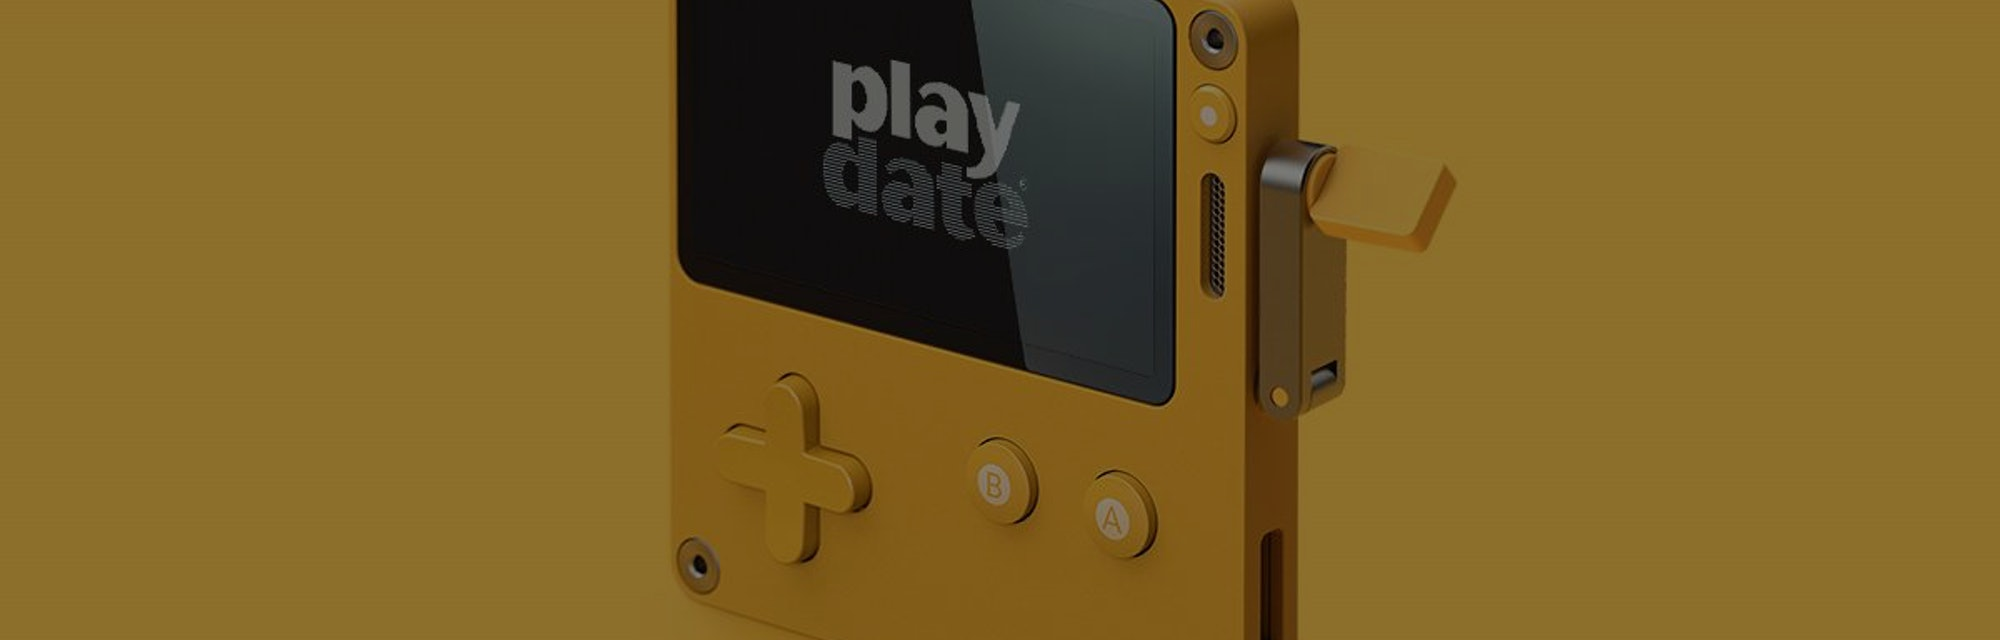 A photo of the Panic Playdate handheld game console.